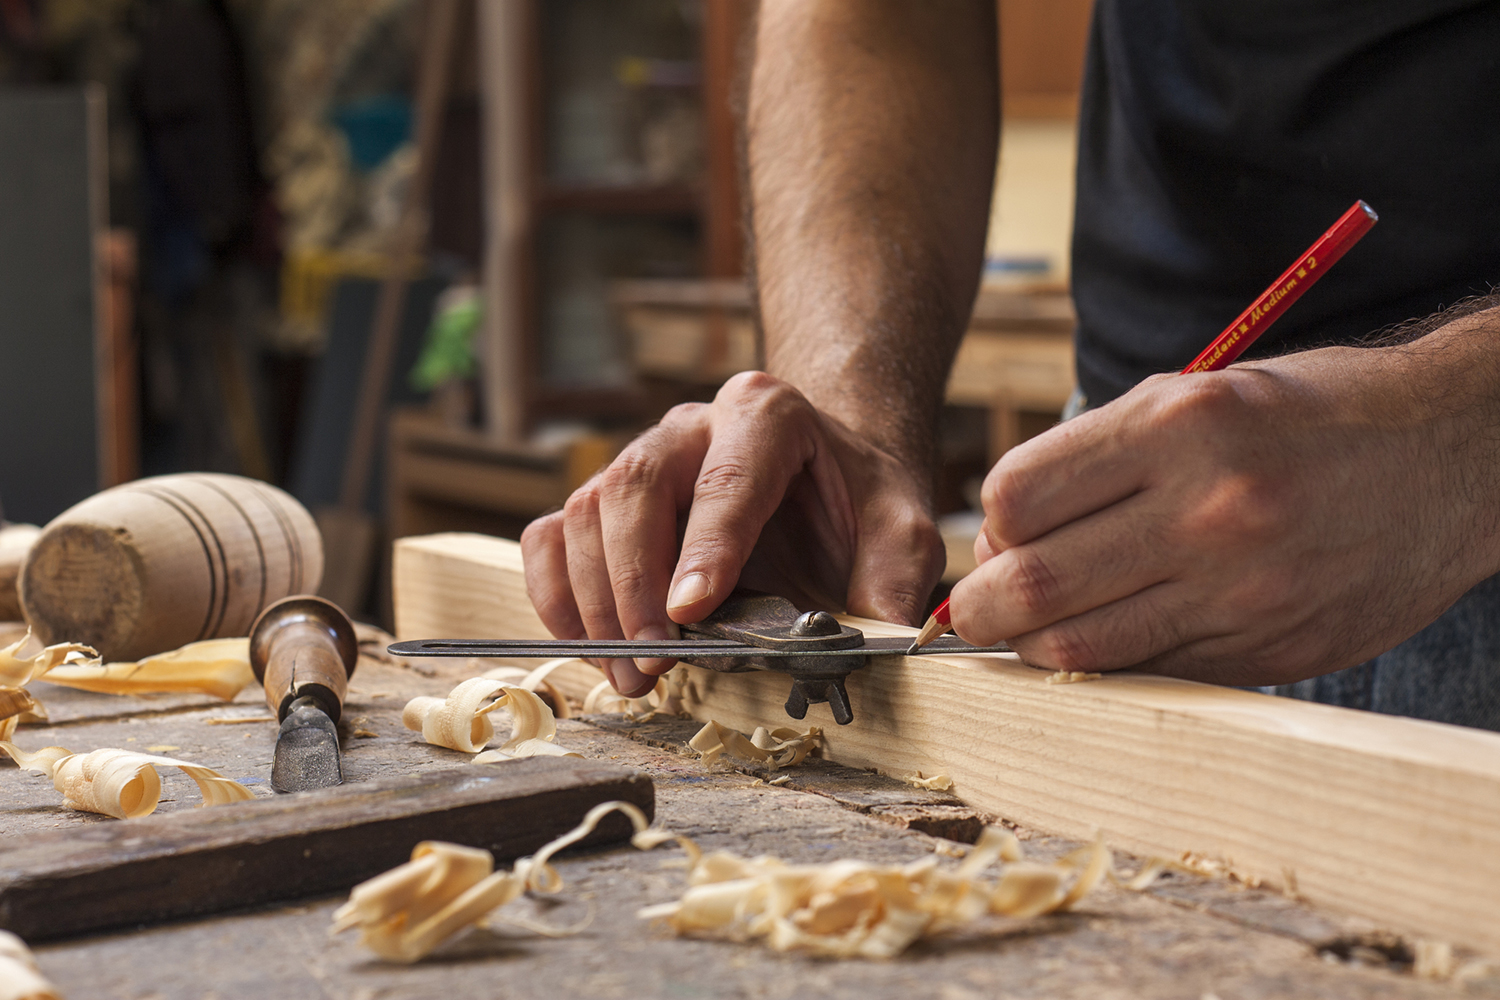 A woodworker's perspective on the journey of counseling - Counseling Today